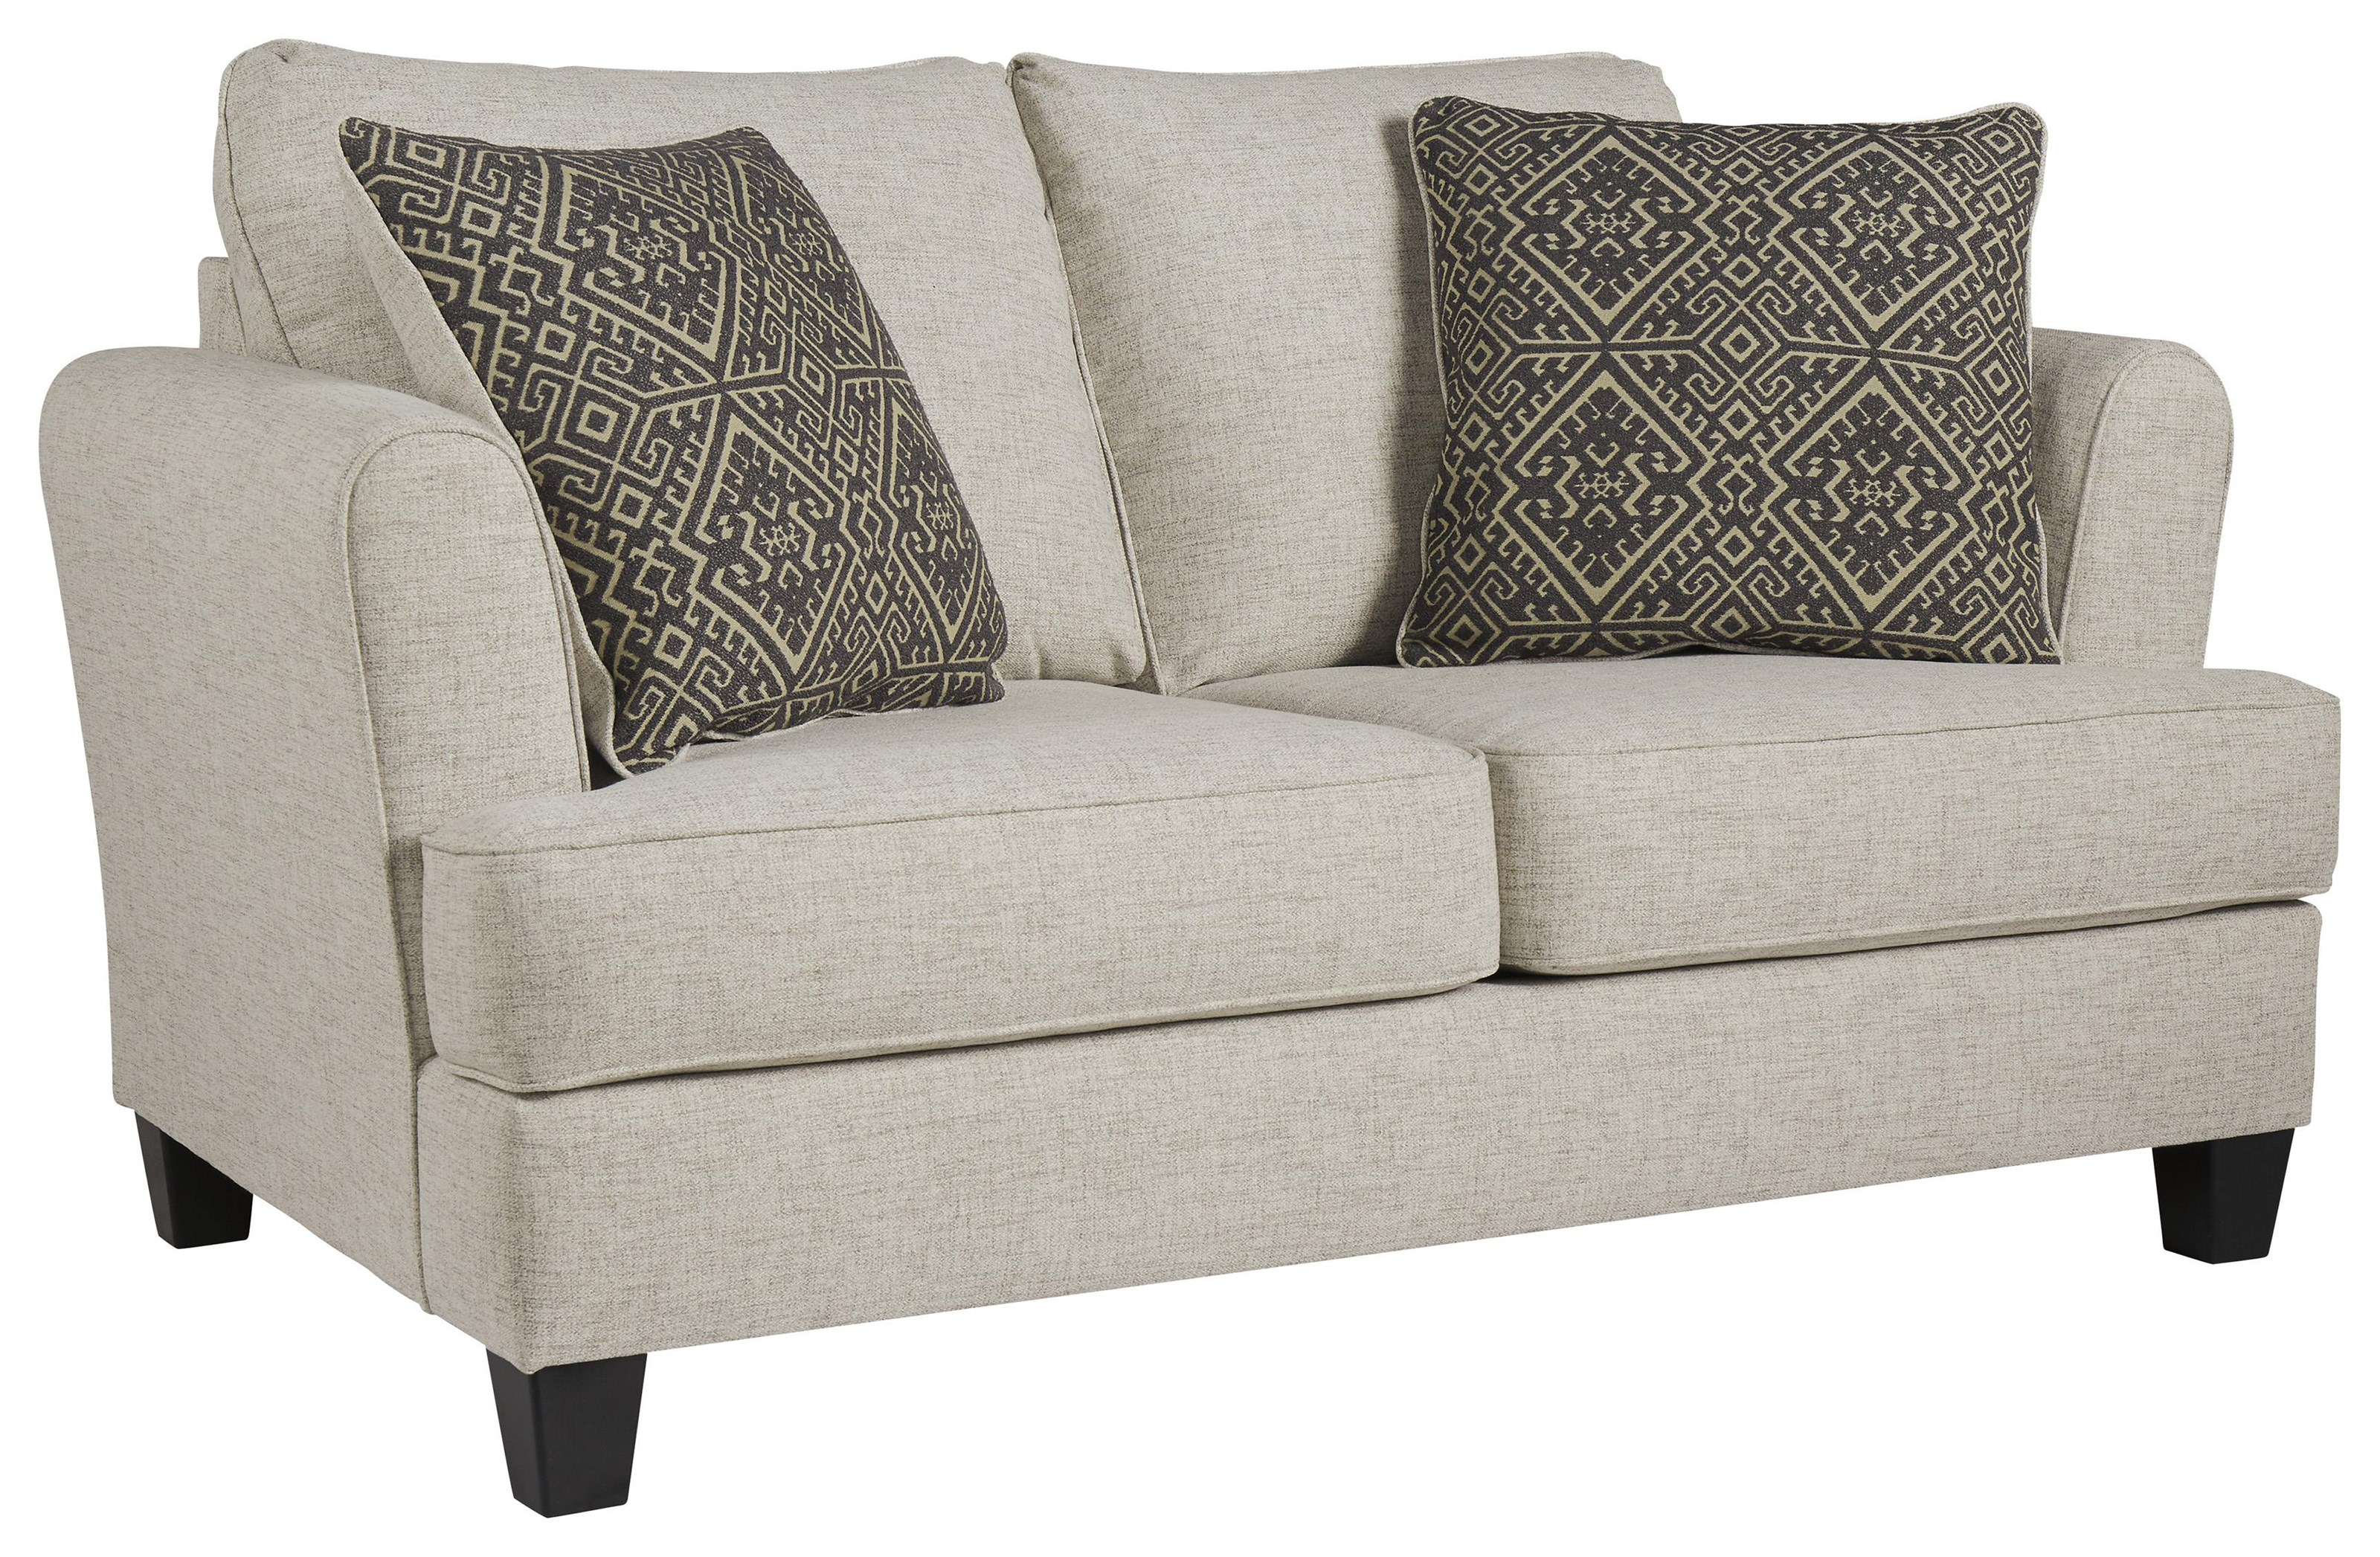 Alcona Loveseat by Ashley Furniture at Furniture and ApplianceMart